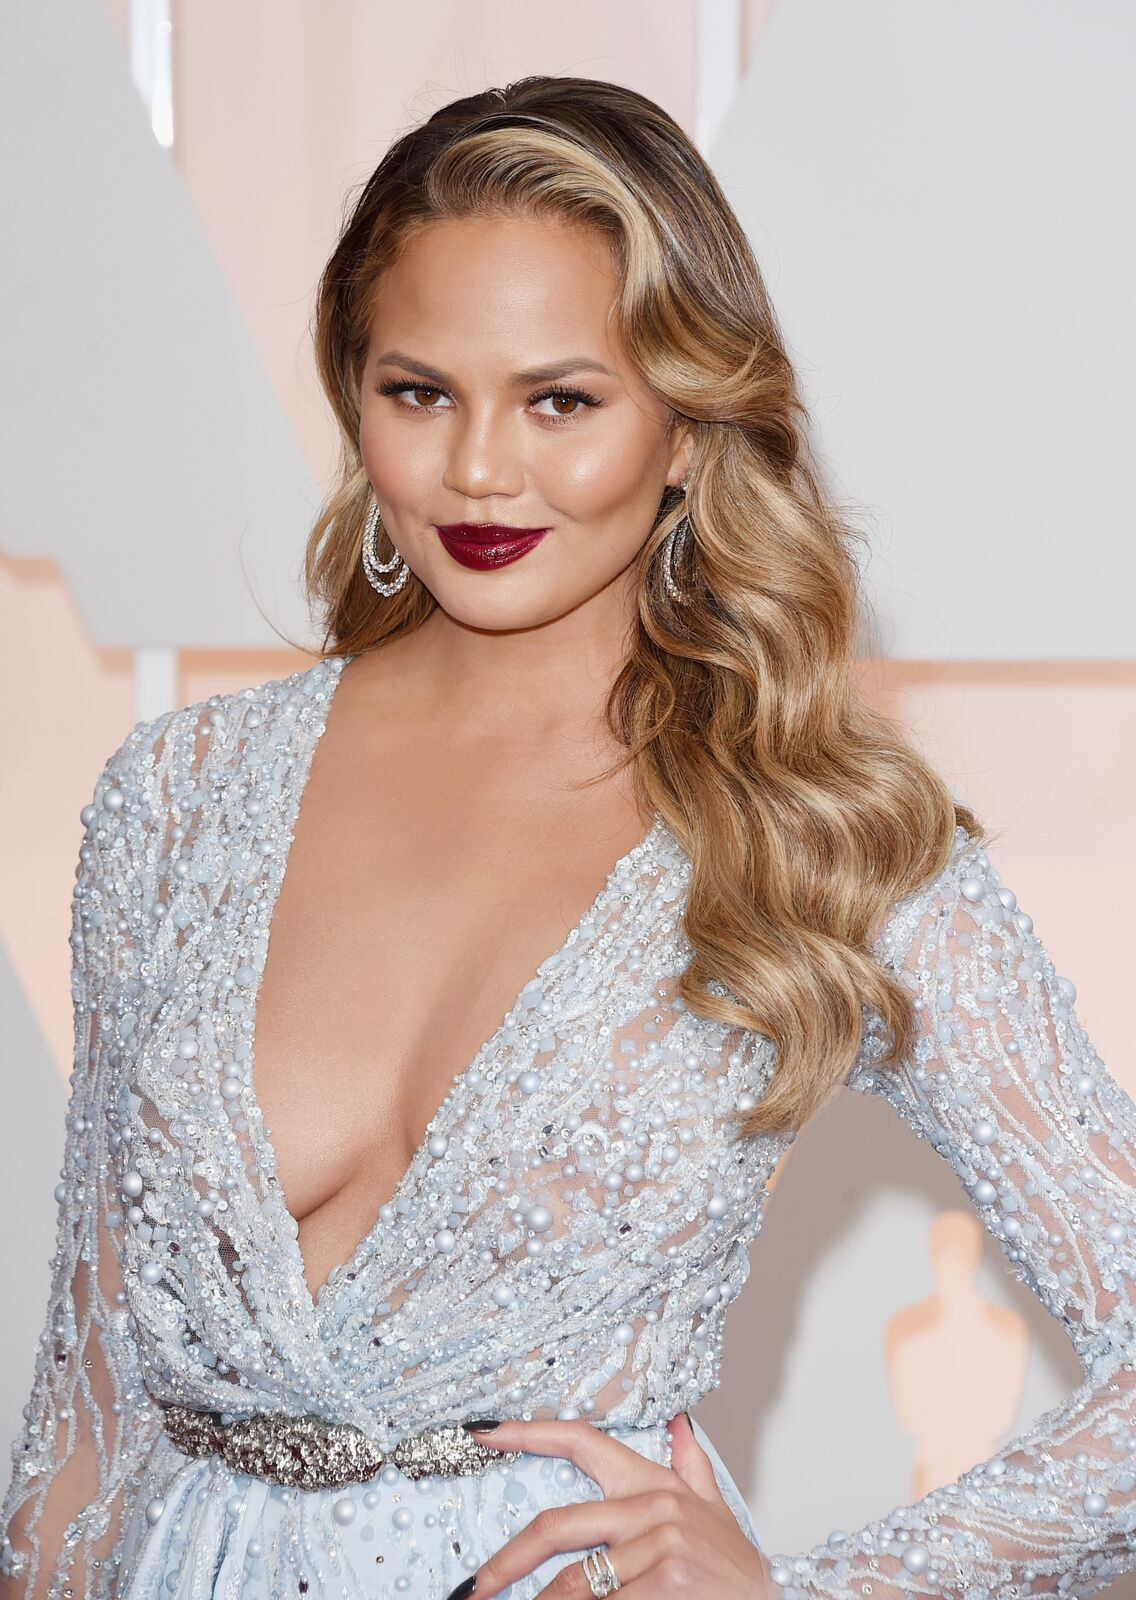 Model Chrissy Teigen attends the 87th Annual Academy Awards at Hollywood & Highland Center on February 22, 2015 in Hollywood, California | Photo: Getty Images